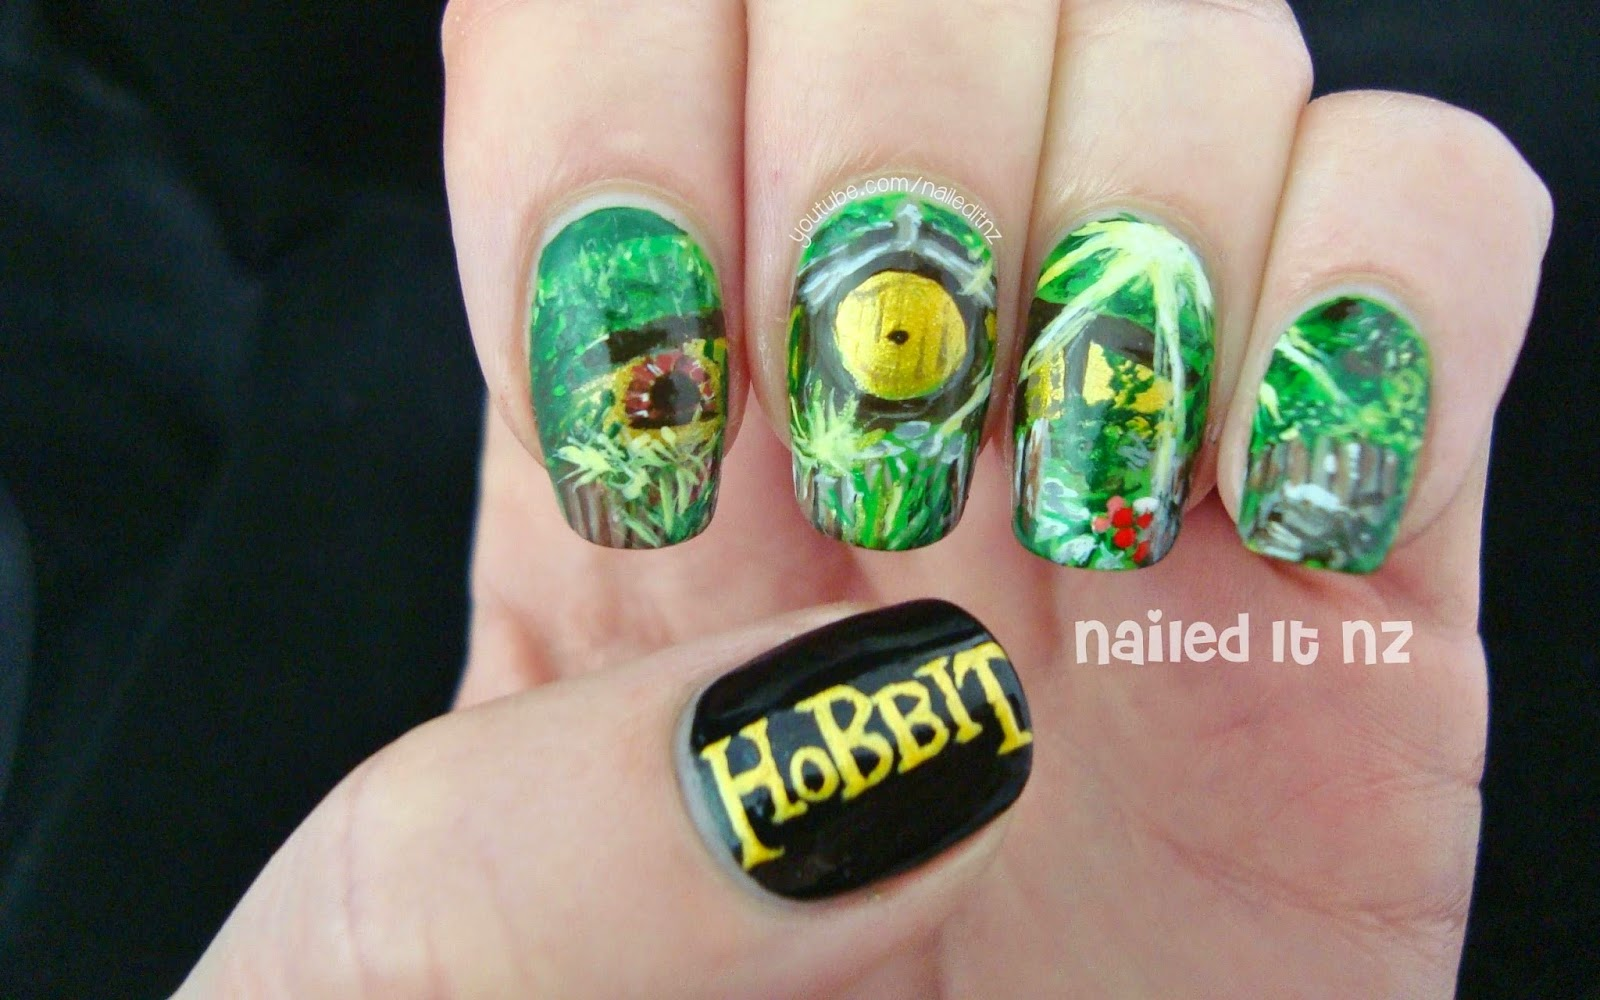 The Hobbit Nail Art | The Shire